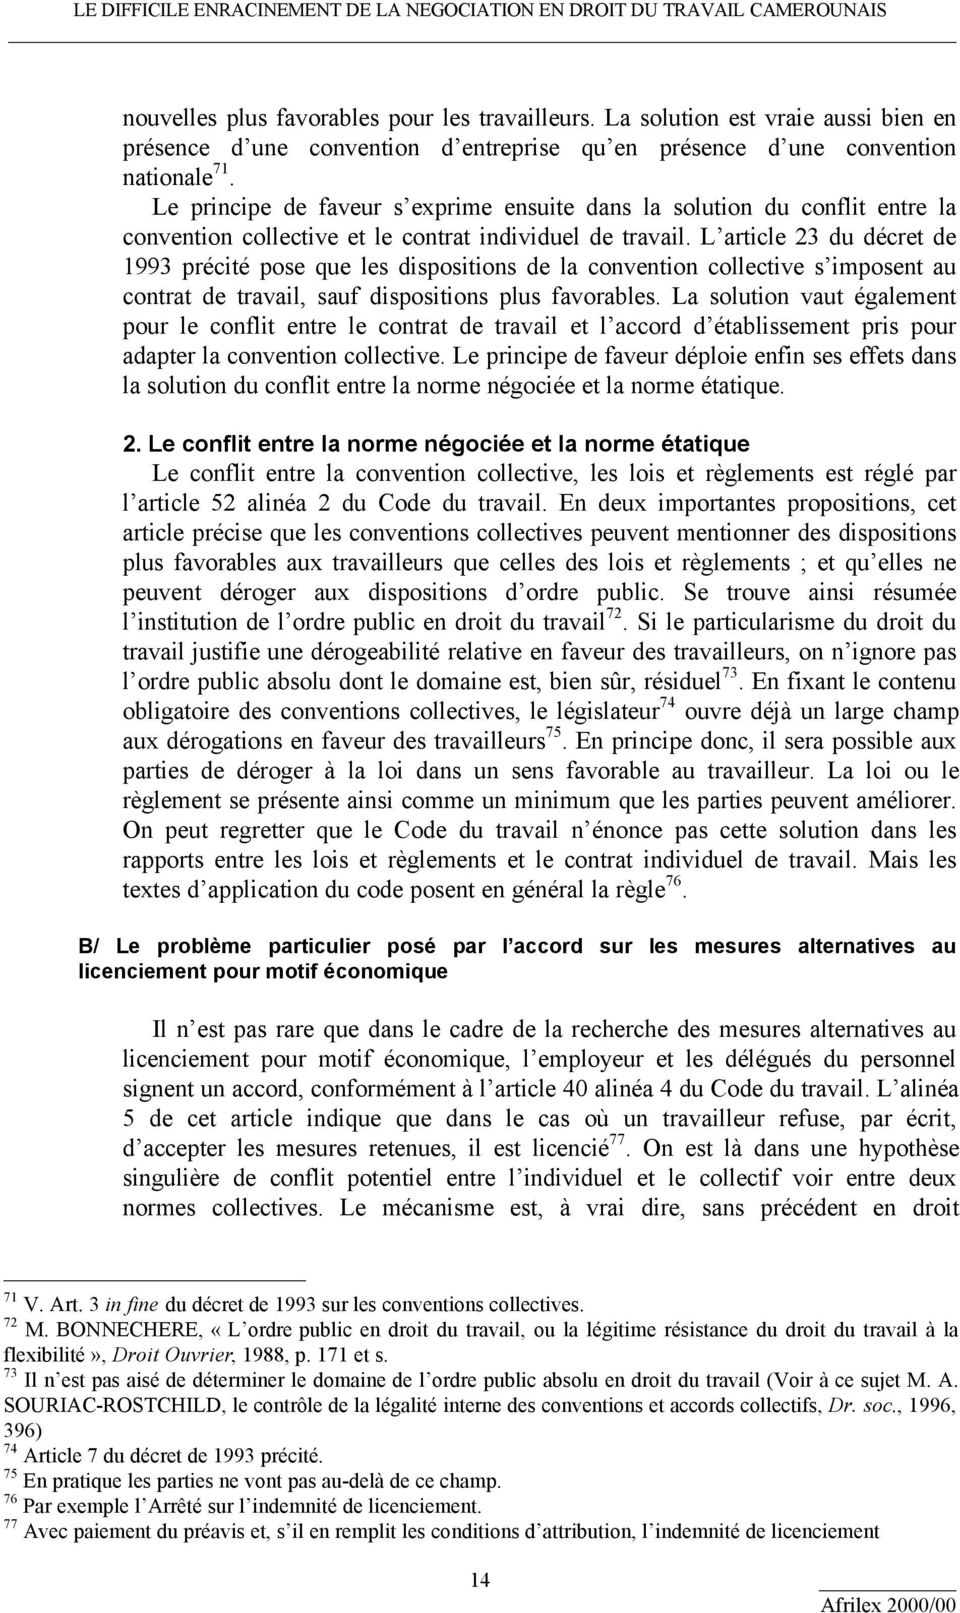 L article 23 du décret de 1993 précité pose que les dispositions de la convention collective s imposent au contrat de travail, sauf dispositions plus favorables.